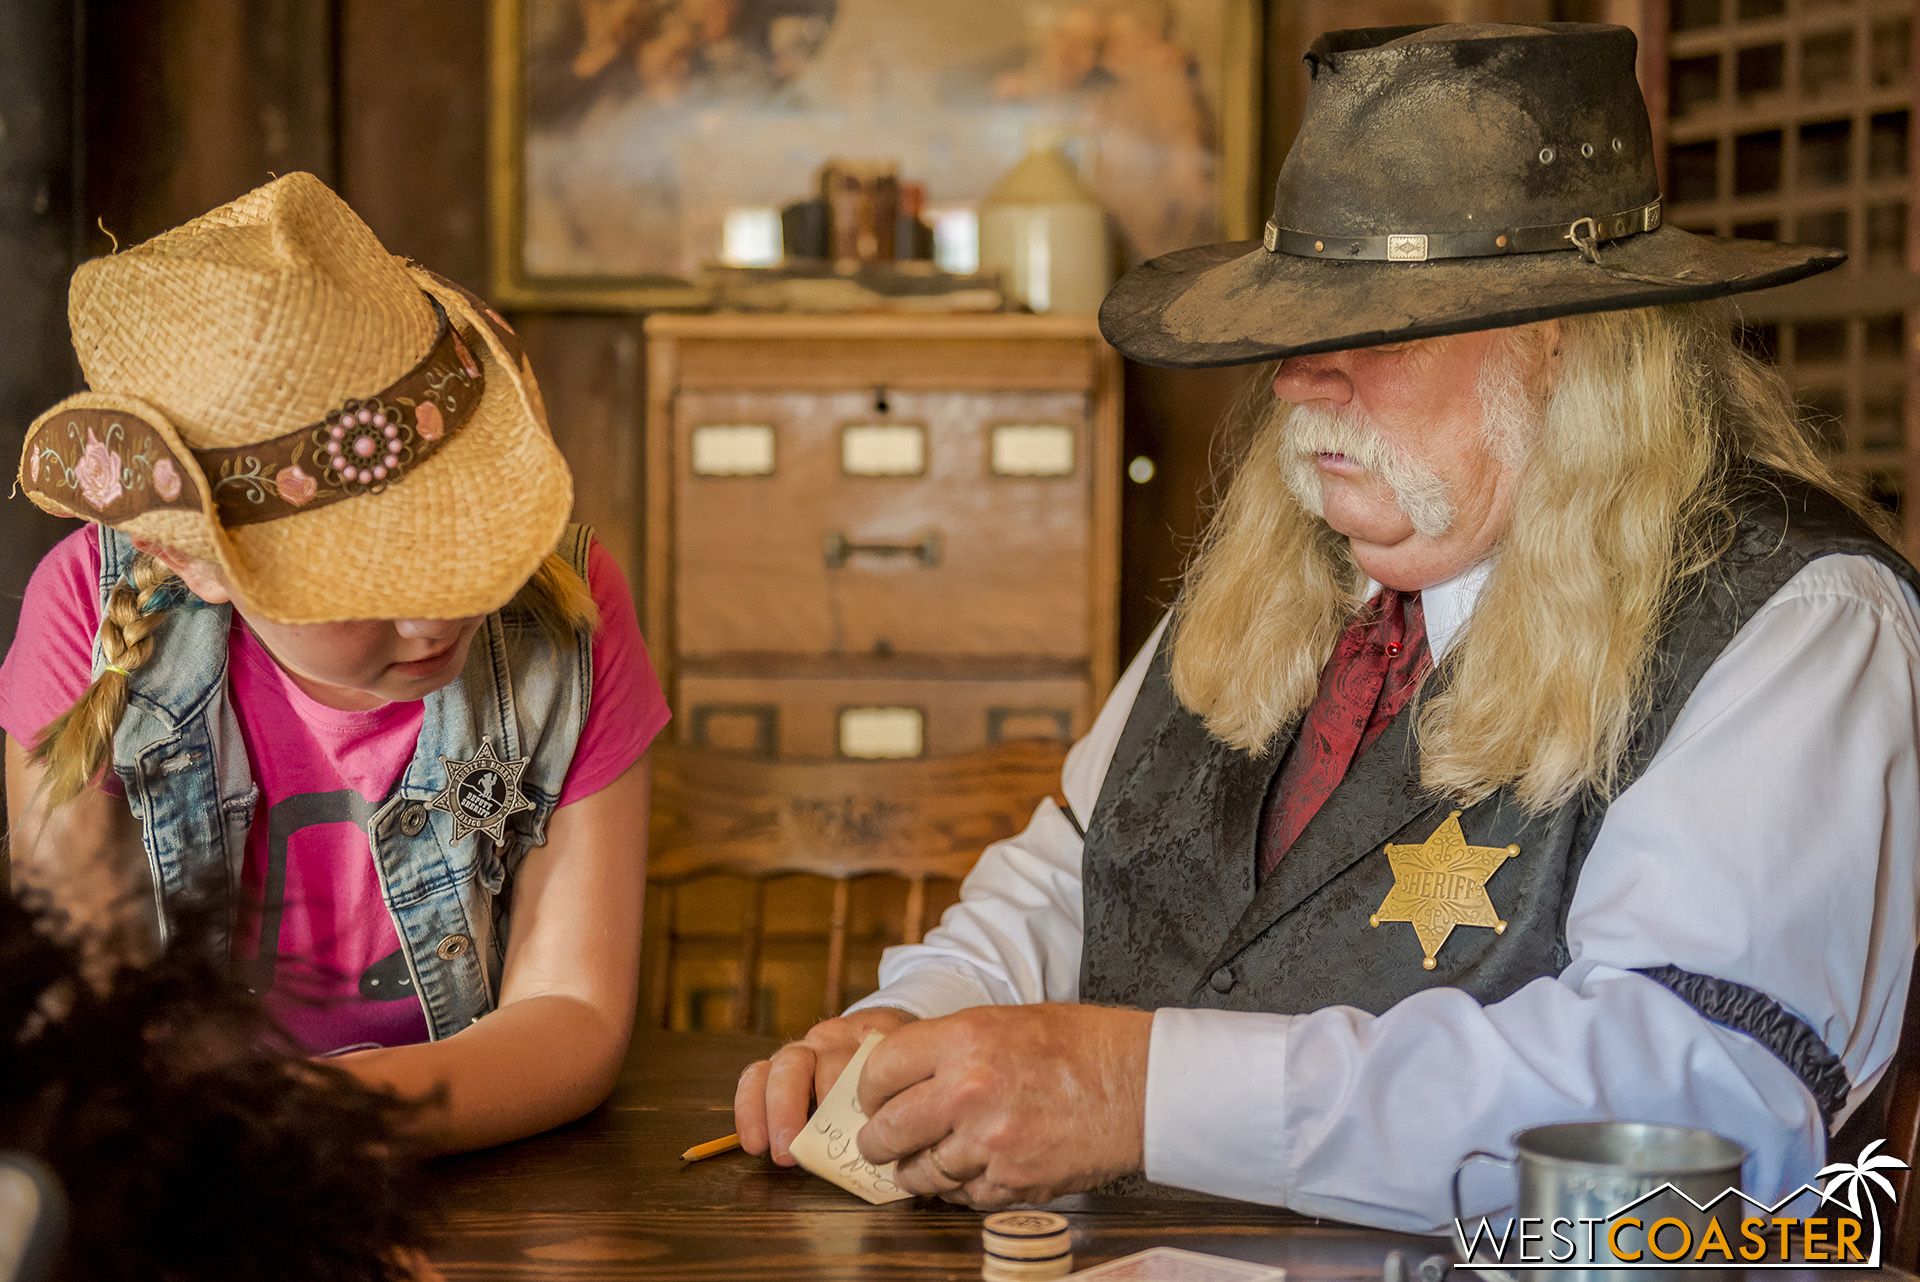 In the Sheriff's office, guests can always join in a card game.